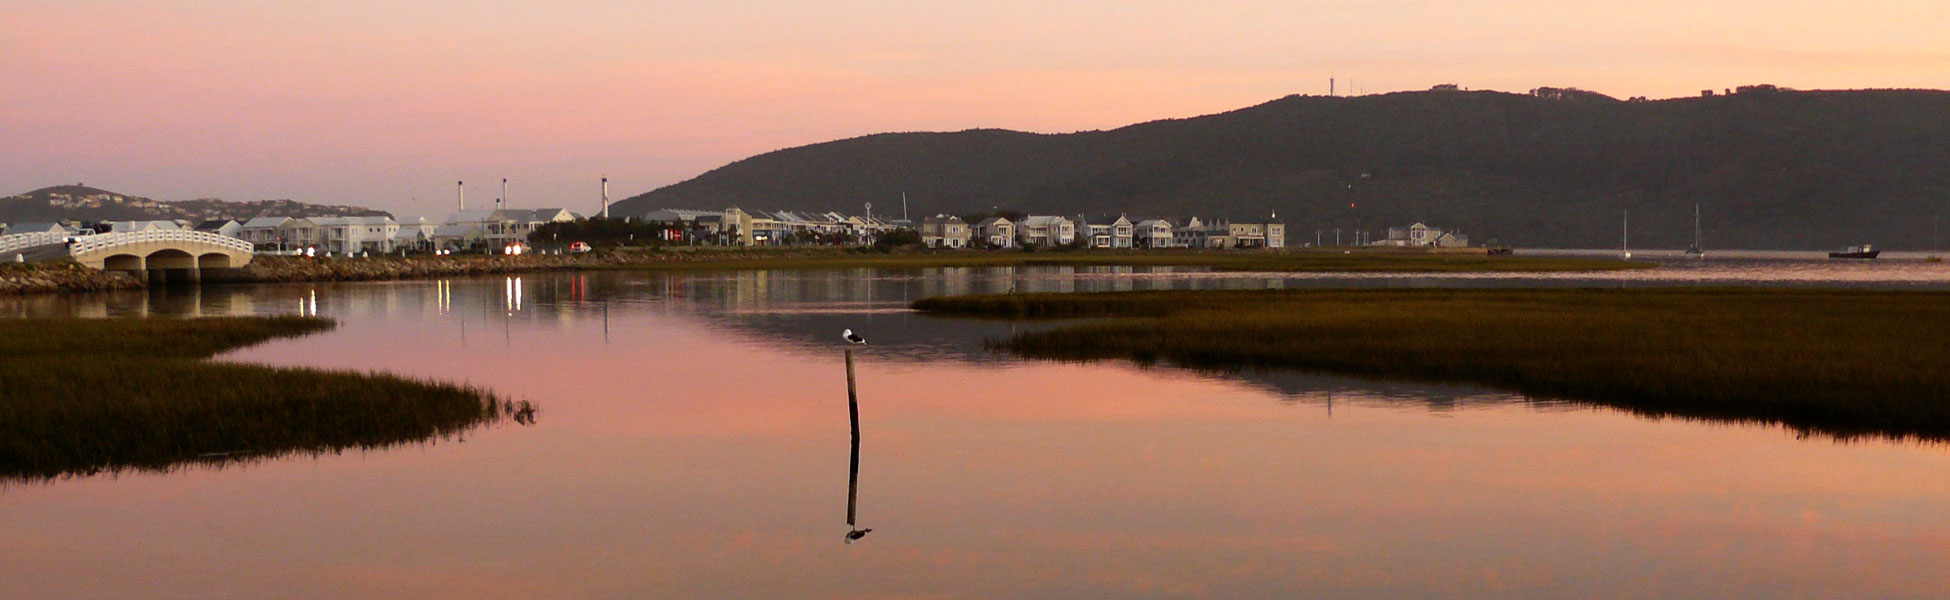 Stannards Bed & Breakfast in Knysna